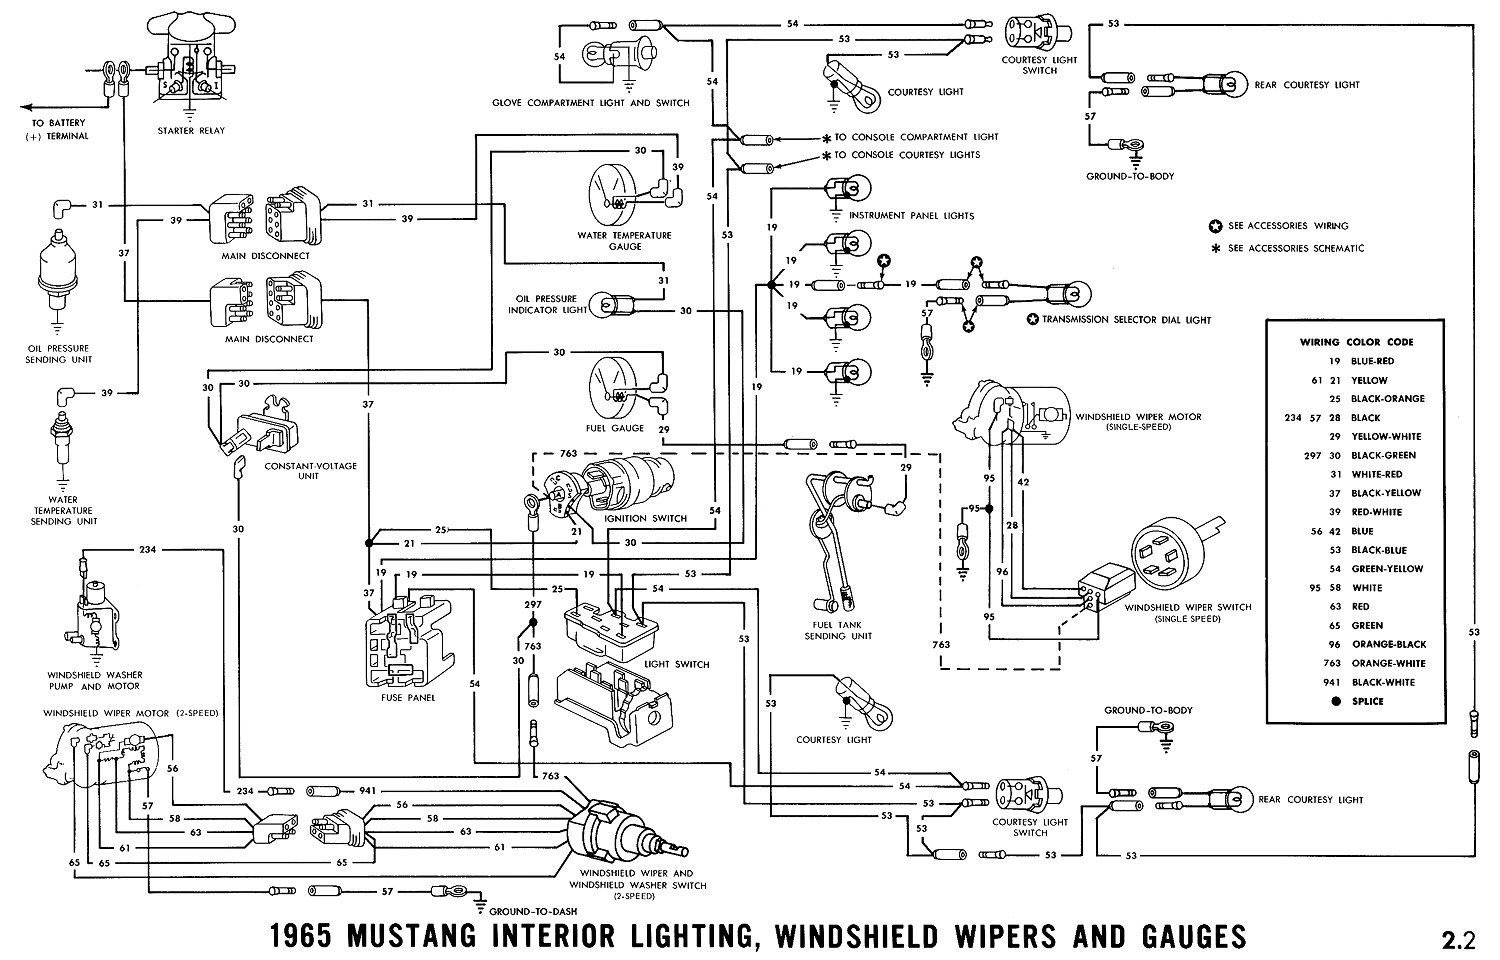 65 Fairlane Wiring Diagram Modern Design Of 63 1966 Mustang 289 Simple Rh Mara Cujas De 67